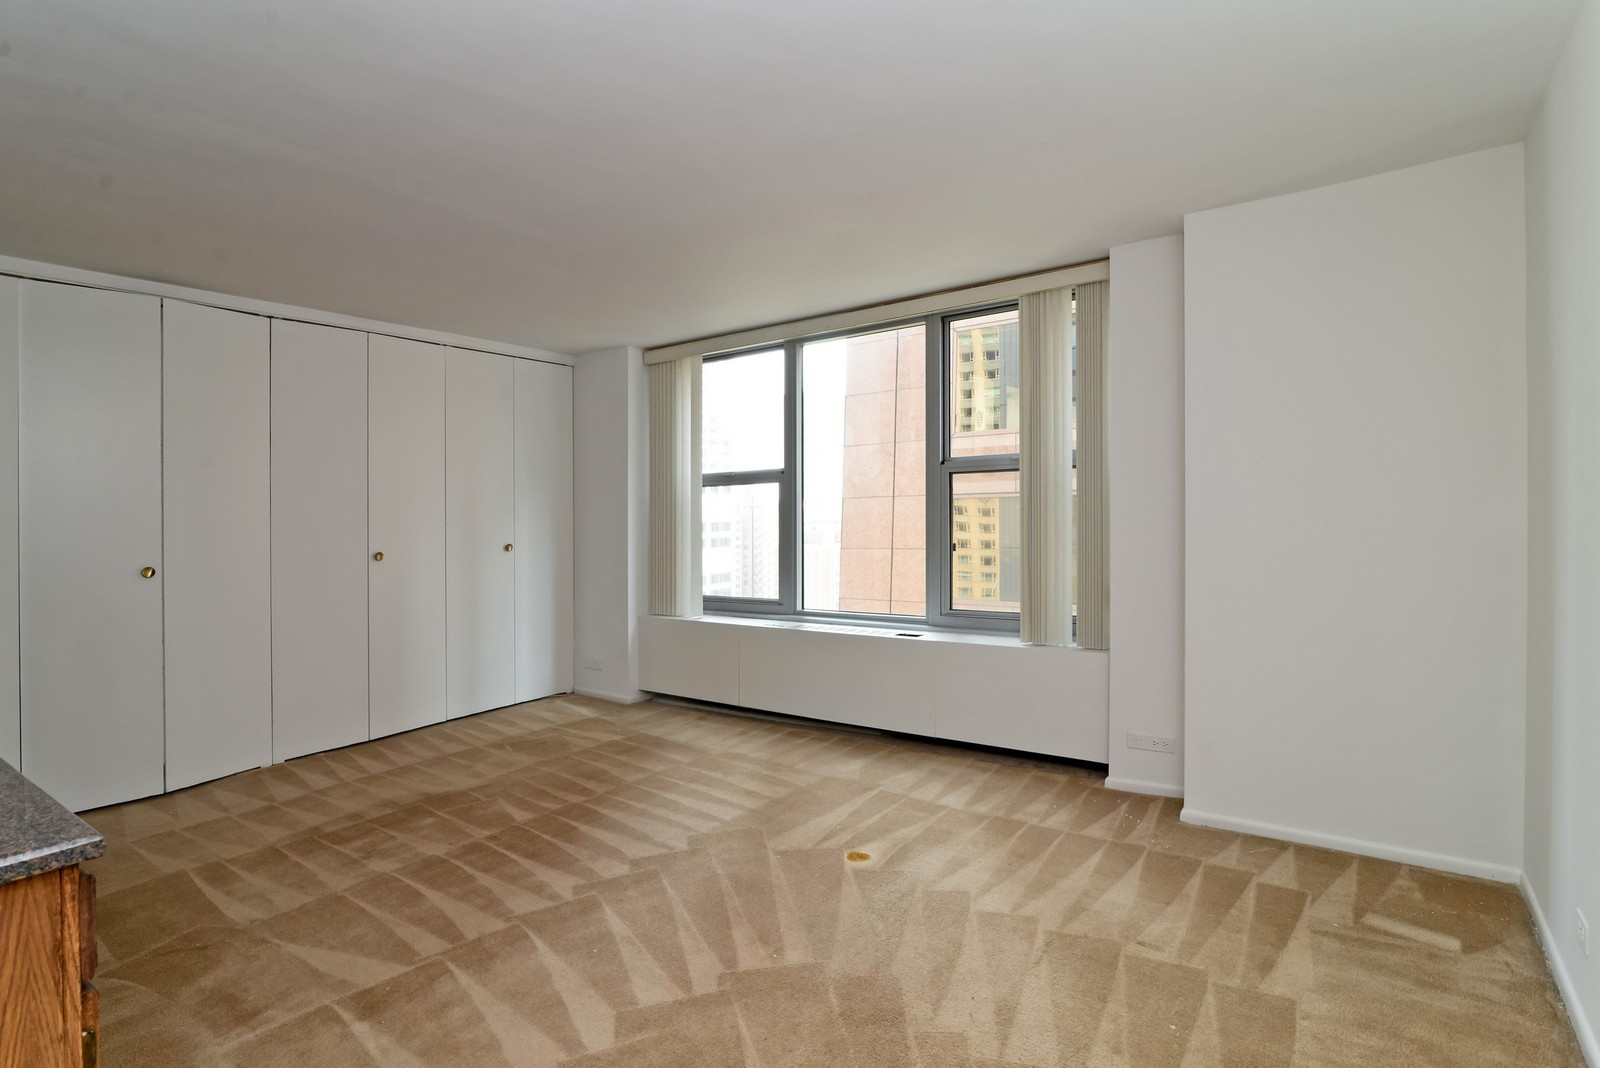 Real Estate Photography - 777 N Michigan Ave, Unit 2200, Chicago, IL, 60611 - Bedroom